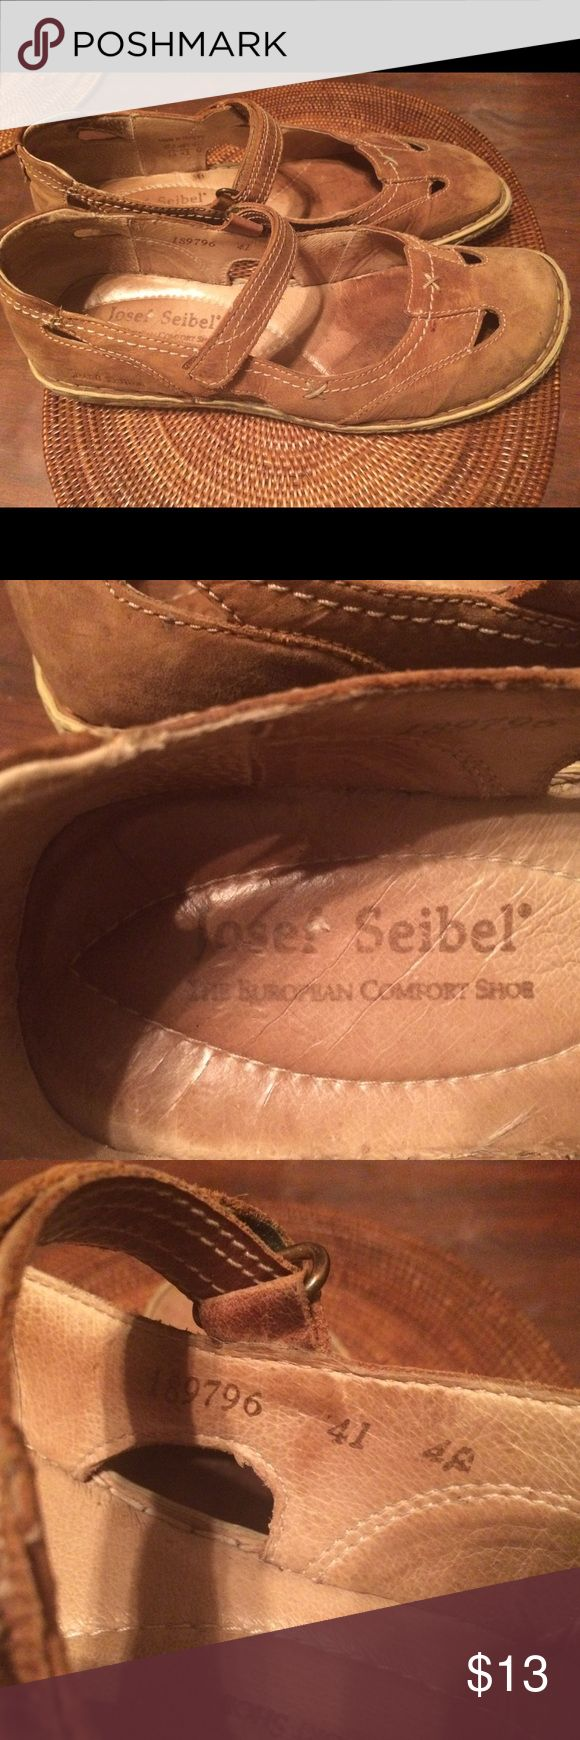 Josef Seibel shoes size 11 (41) Good used condition . Have seen lots of wear, but lots of life left. Josef Seibel Shoes Flats & Loafers